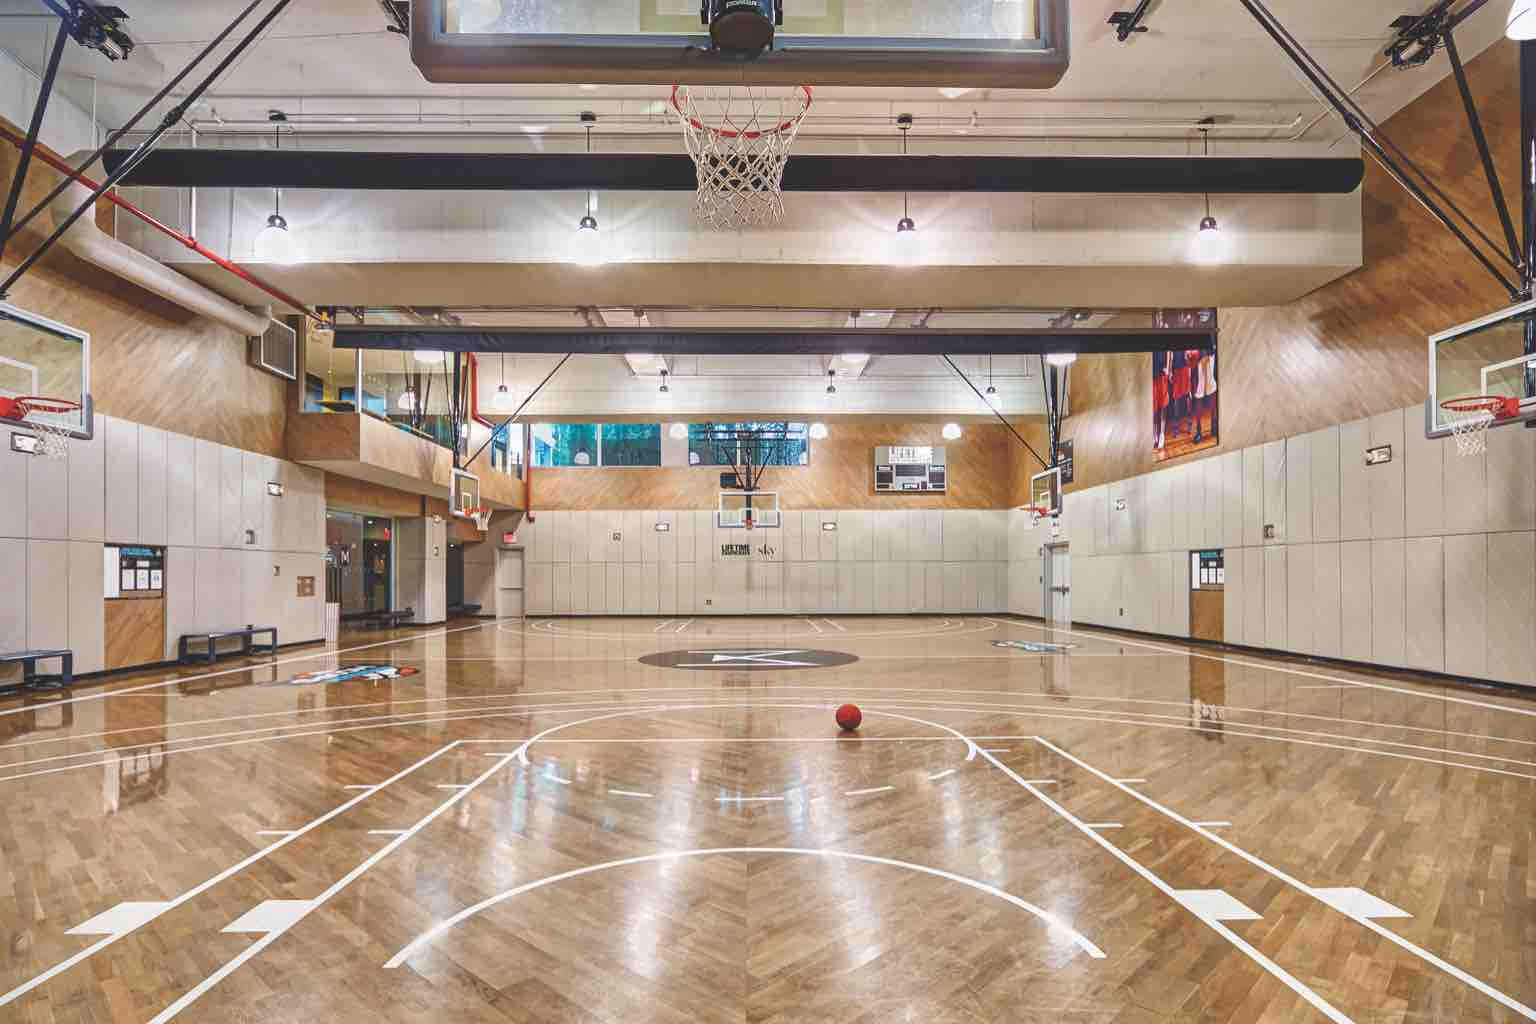 A photo of the expansive basketball court at Life Time Manhattan Sky.